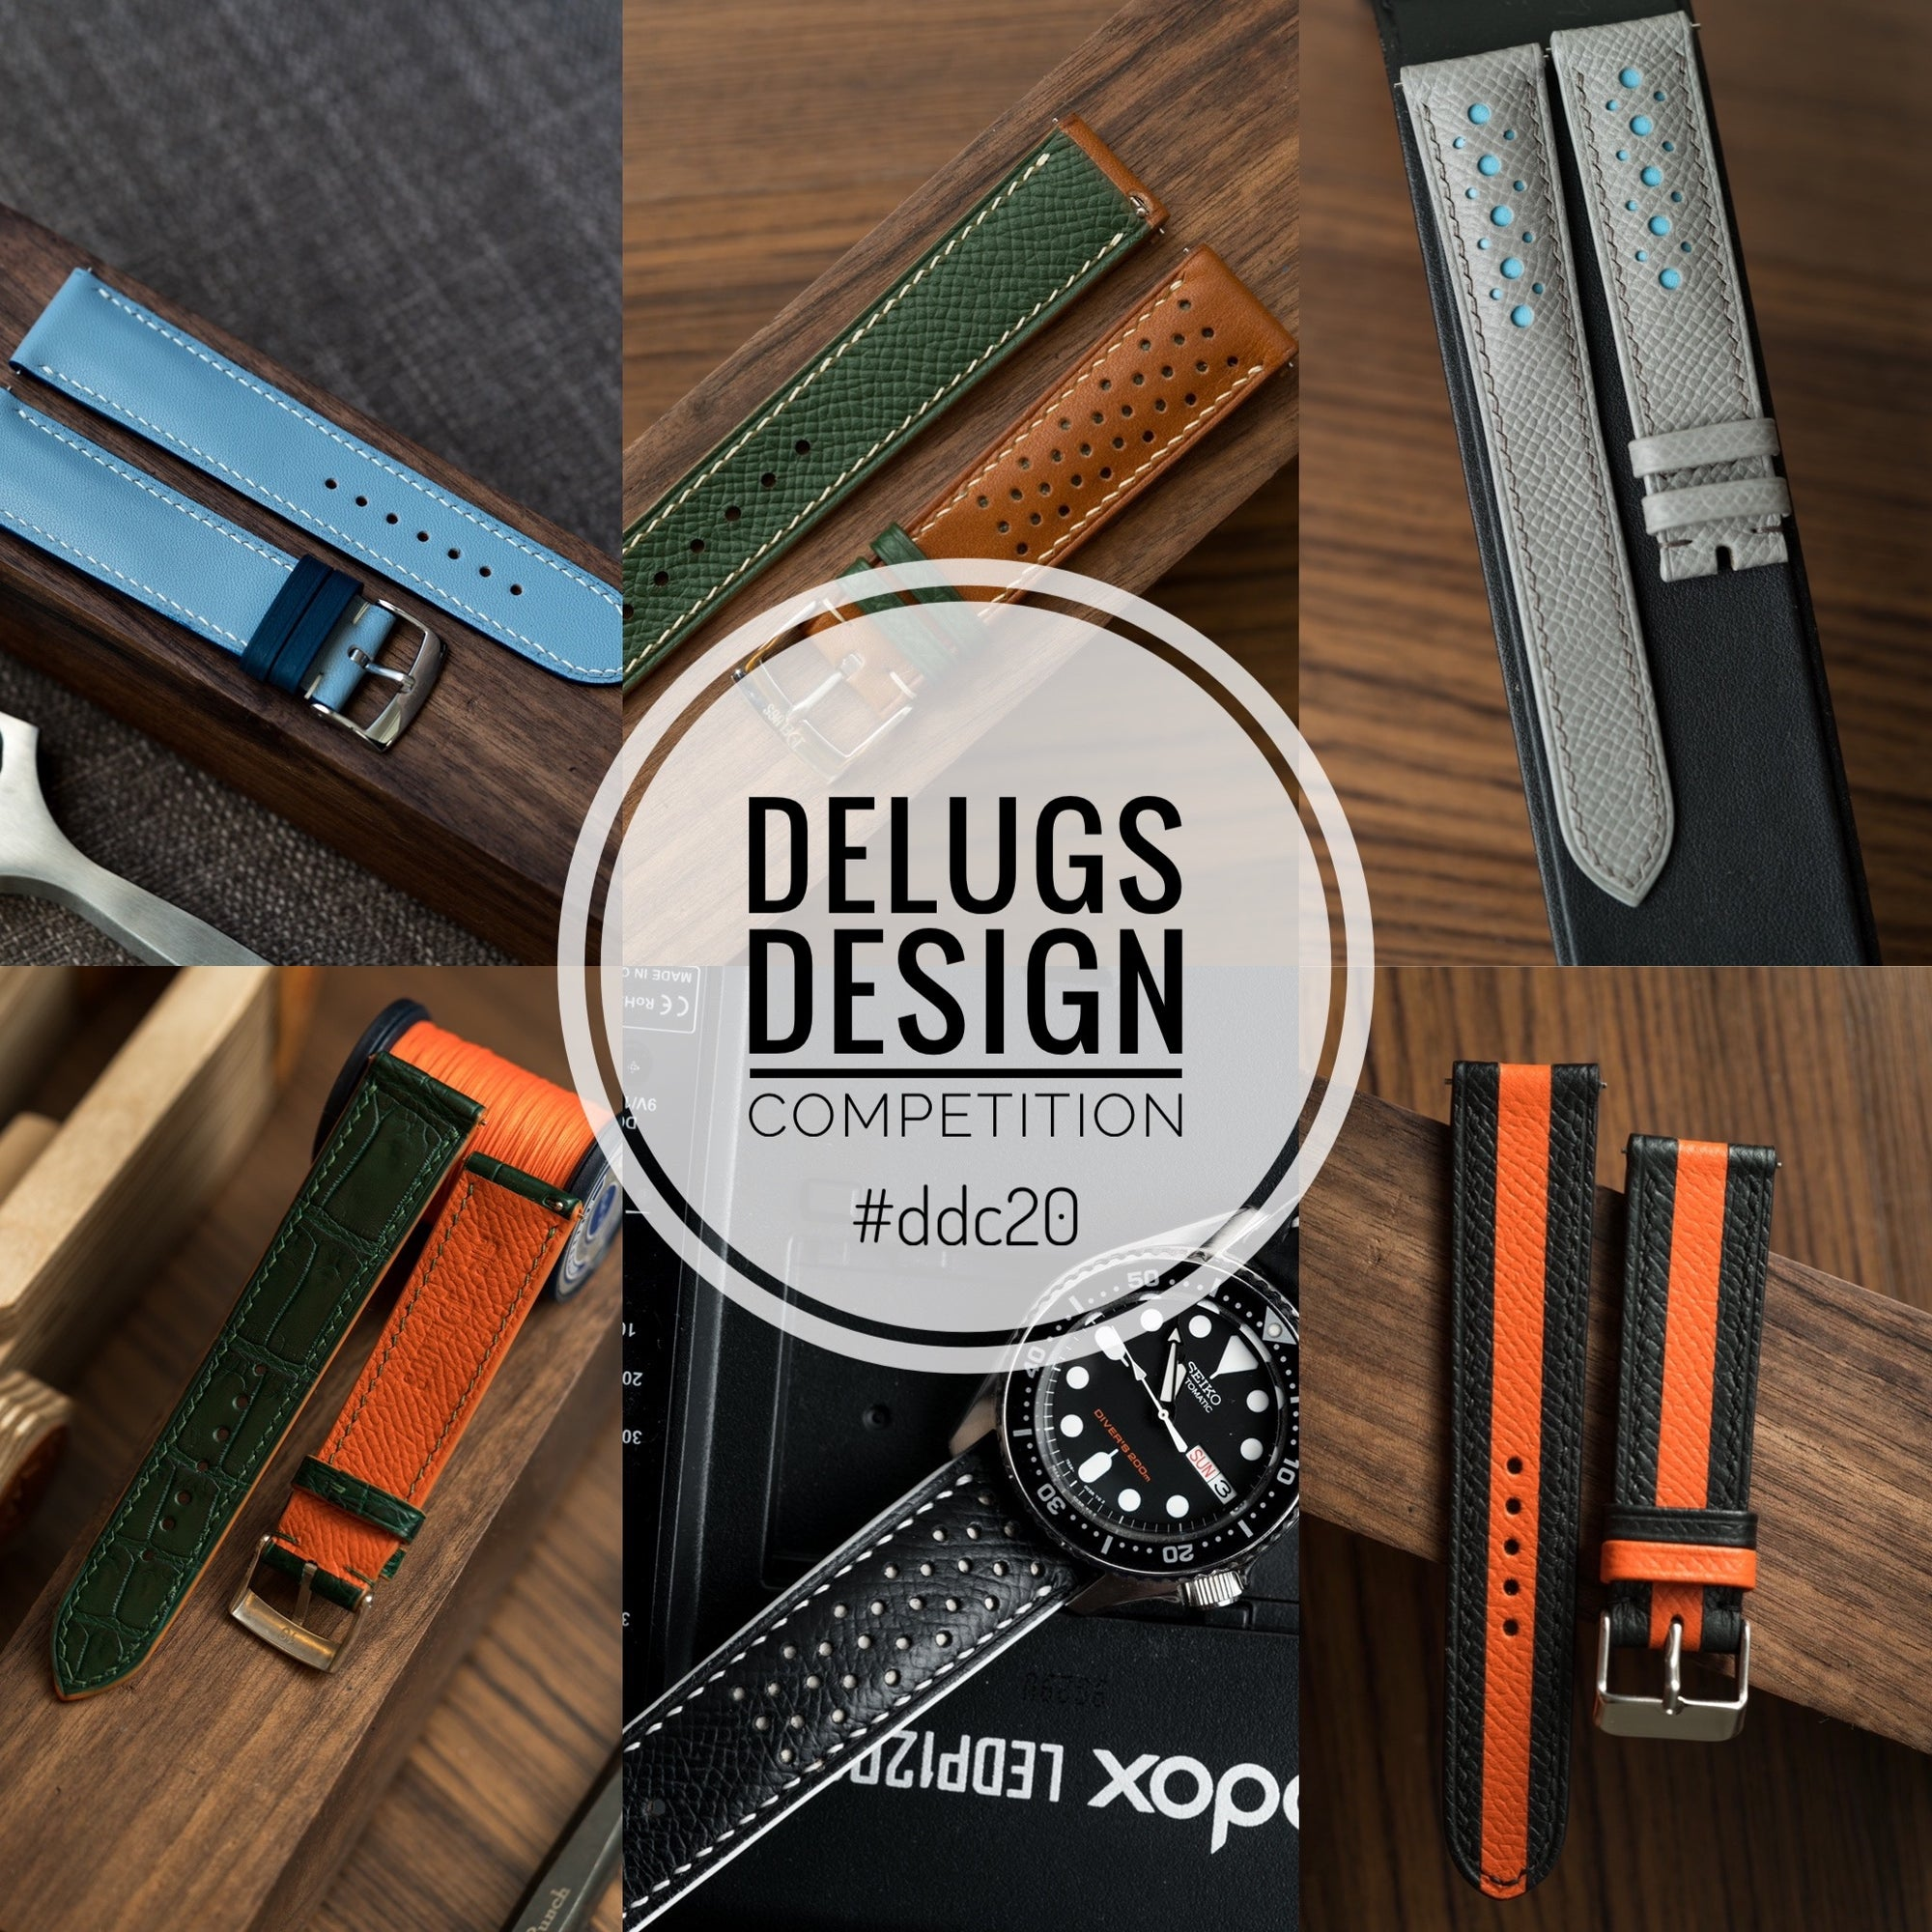 Stay Home and Design A Strap: Delugs Design Competition 2020